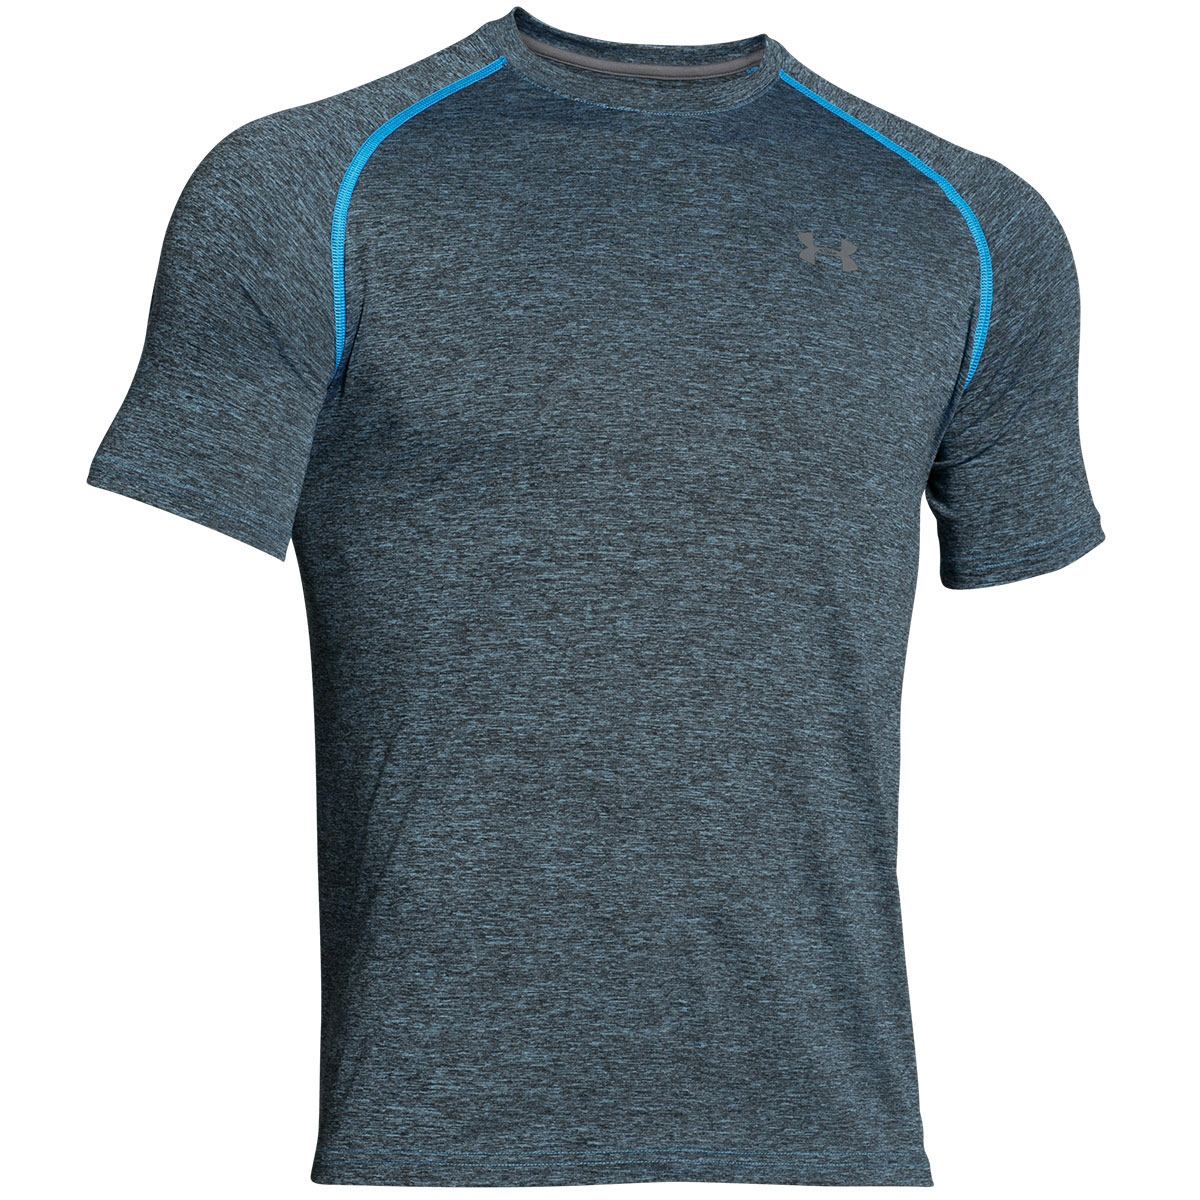 Under armour aw 2016 mens ua tech ss t shirt heatgear gym for Under armour men s tech short sleeve t shirt